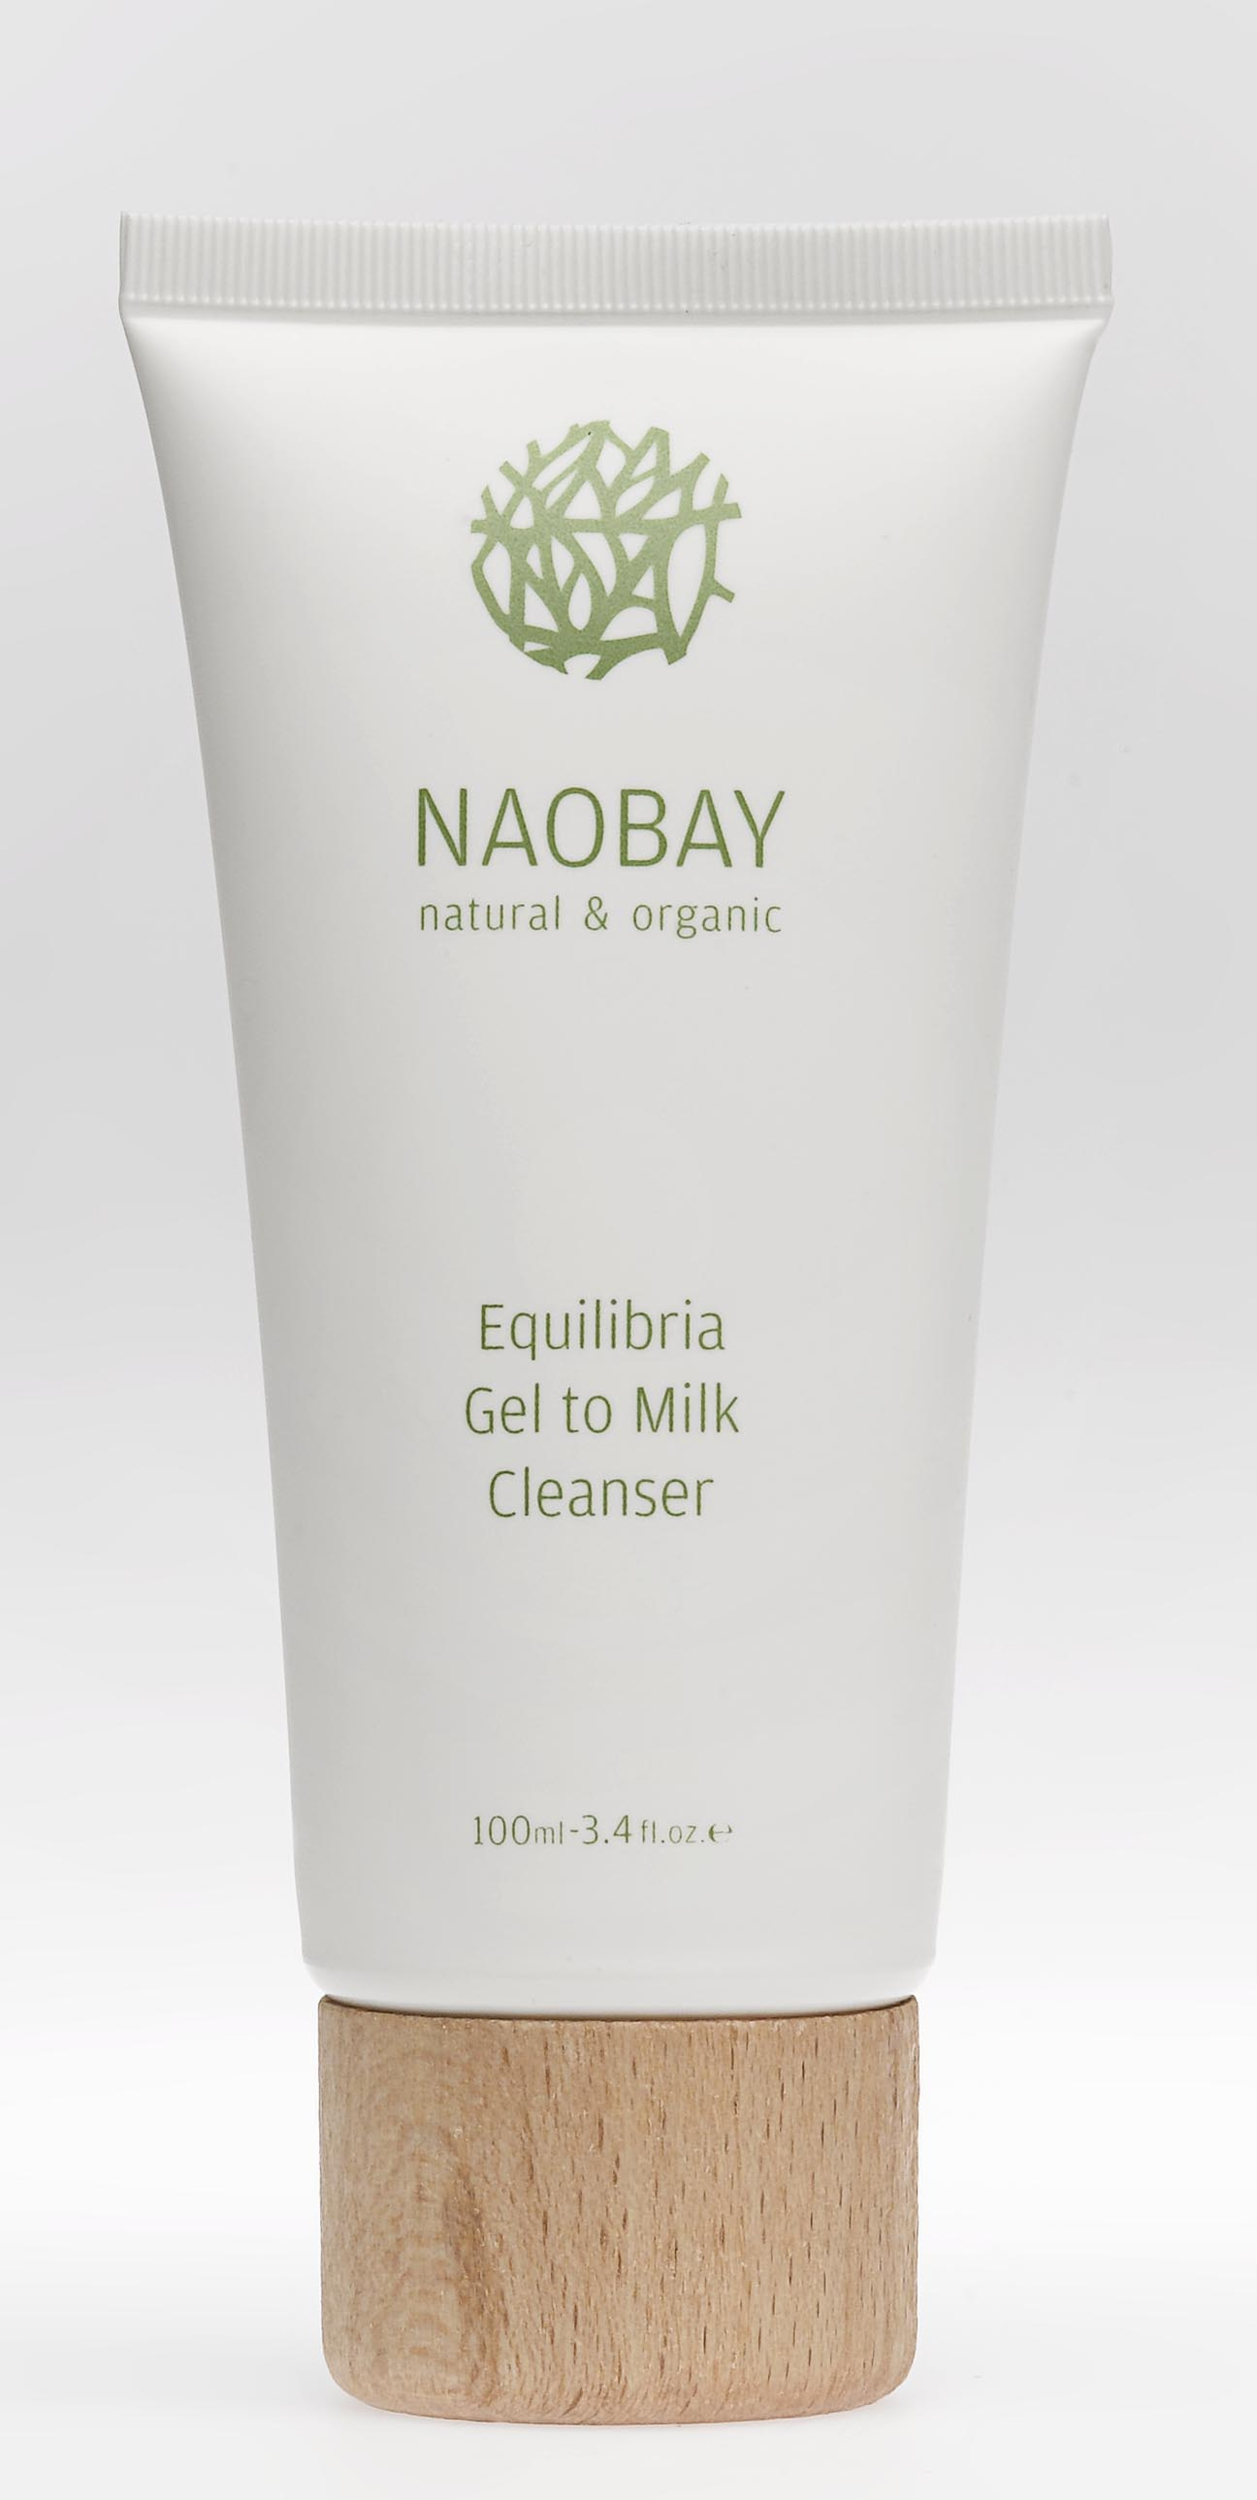 241 EQUILIBRIA_GET_TO_MILK_CLEANSER100ml